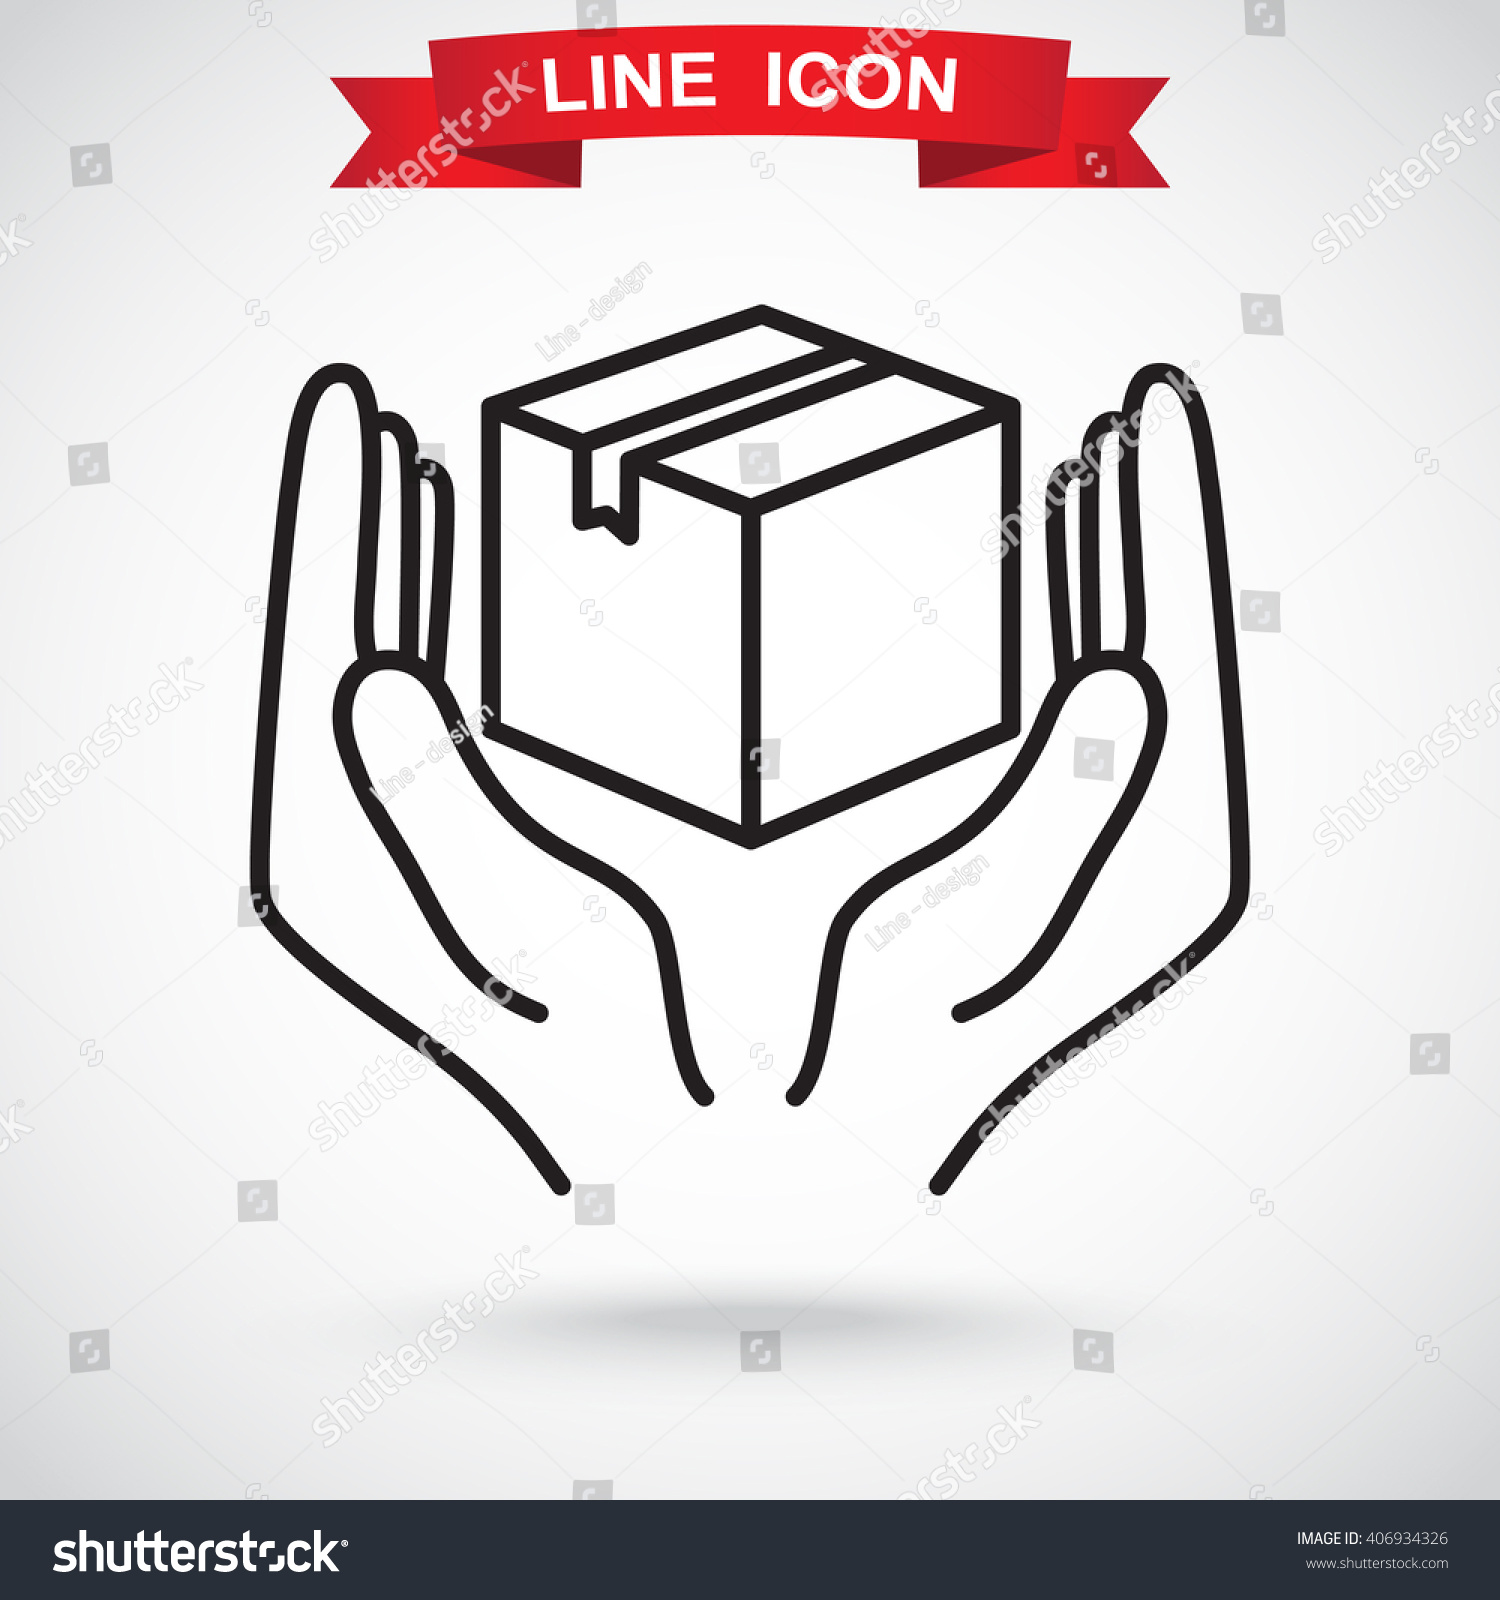 Line icon handle care sign stock vector 406934326 shutterstock line icon handle with care sign buycottarizona